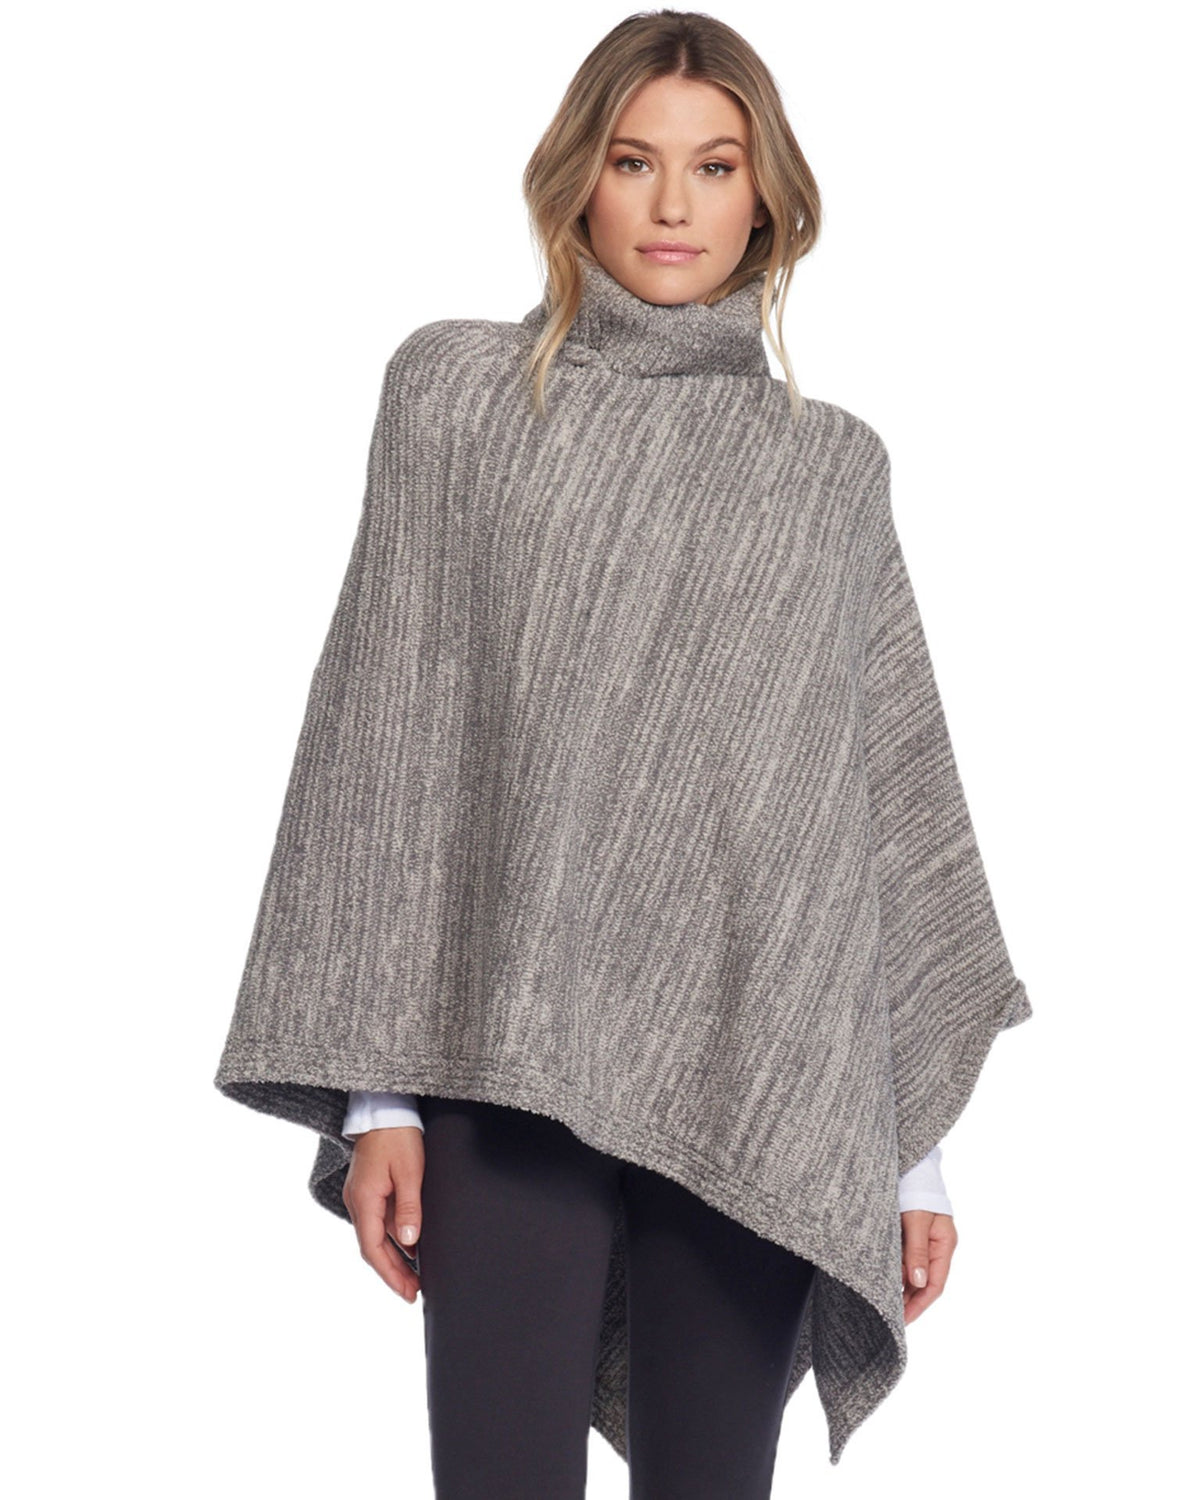 Barefoot Dreams Clothing Graphite/Stone / O/S Cozychic Point Dume Poncho